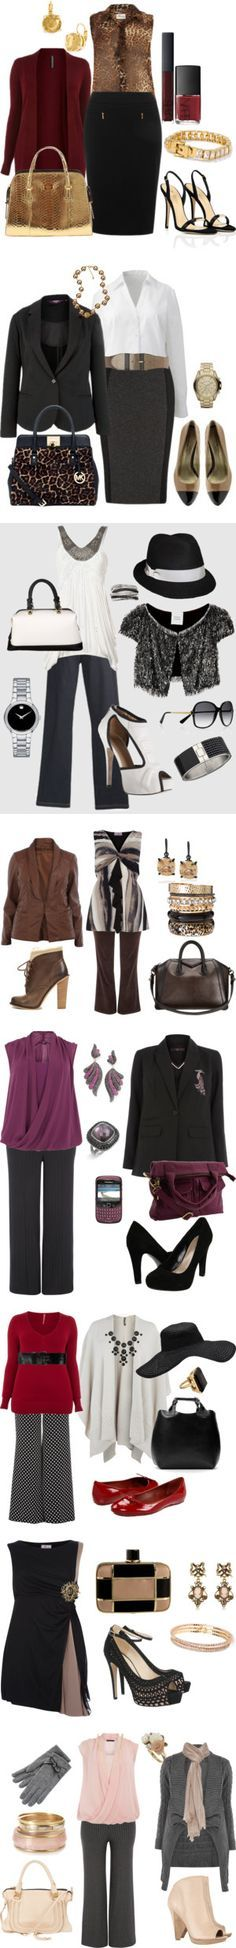 """""""plus size work clothes"""" by stephanycarmona ❤ liked on Polyvore"""